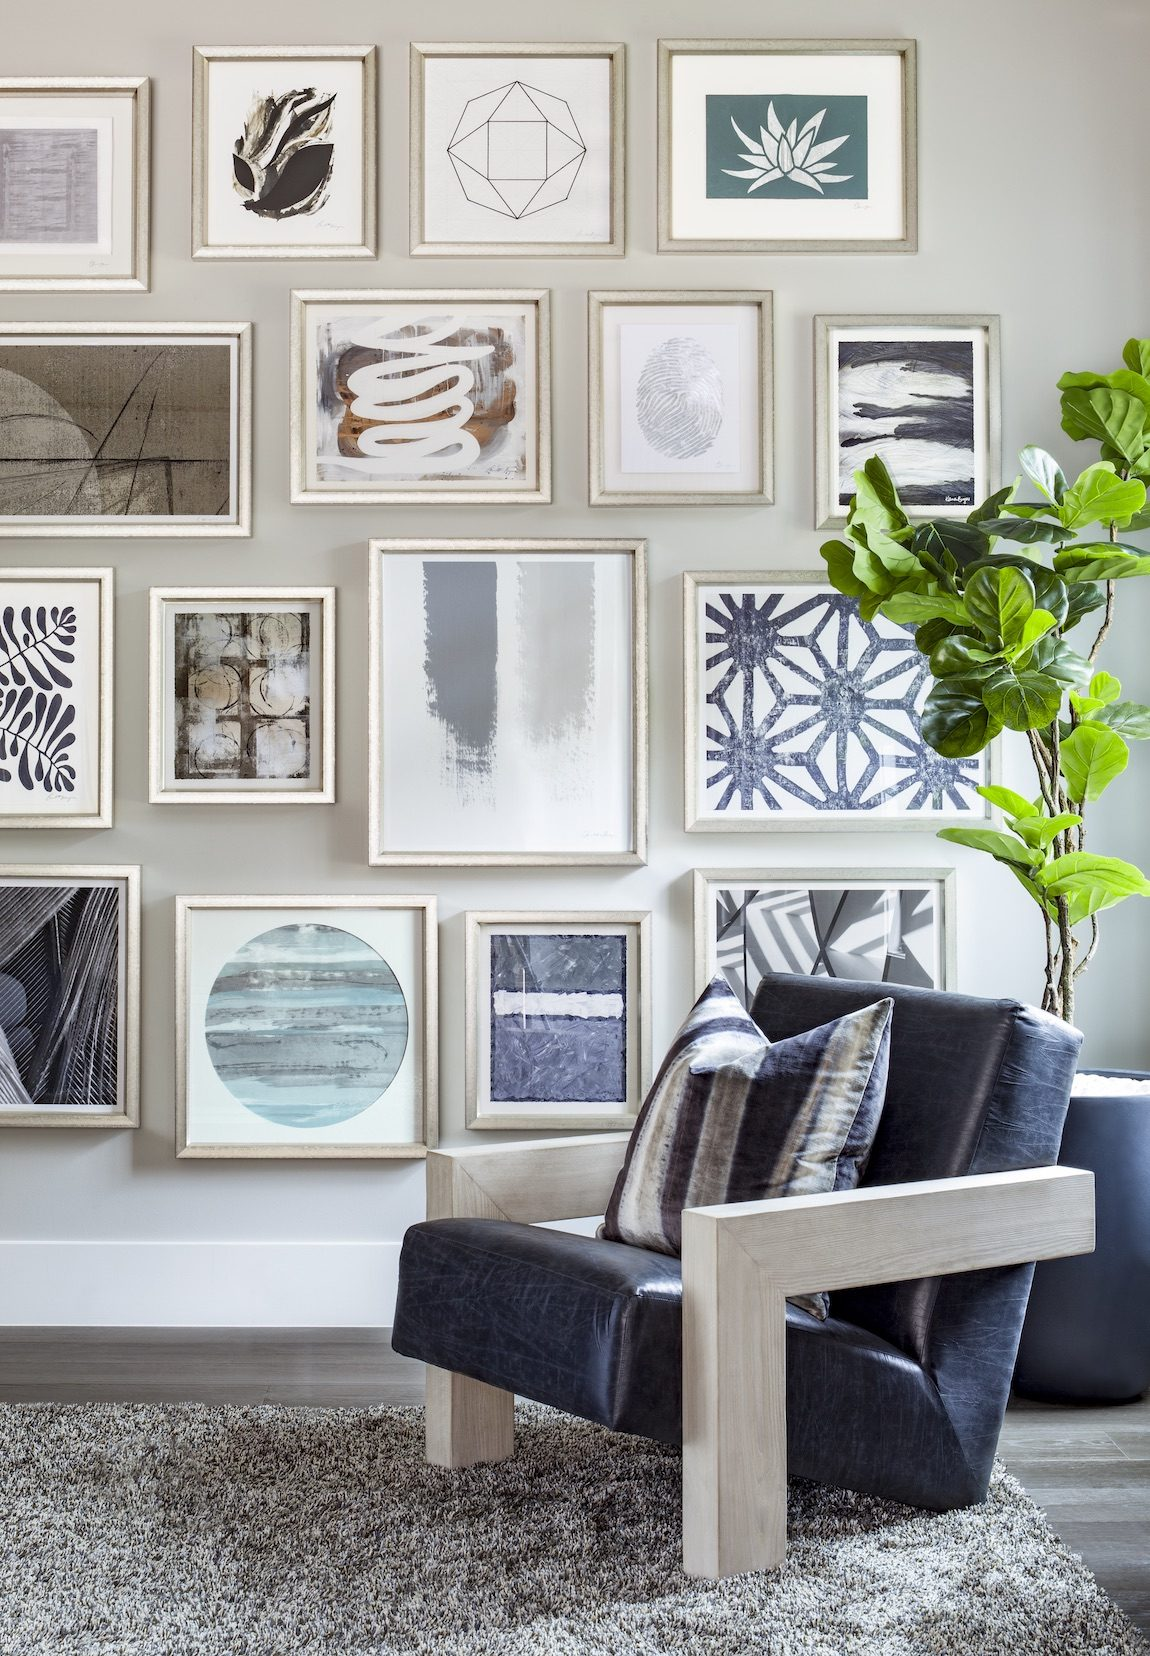 Corner sitting area with photo gallery